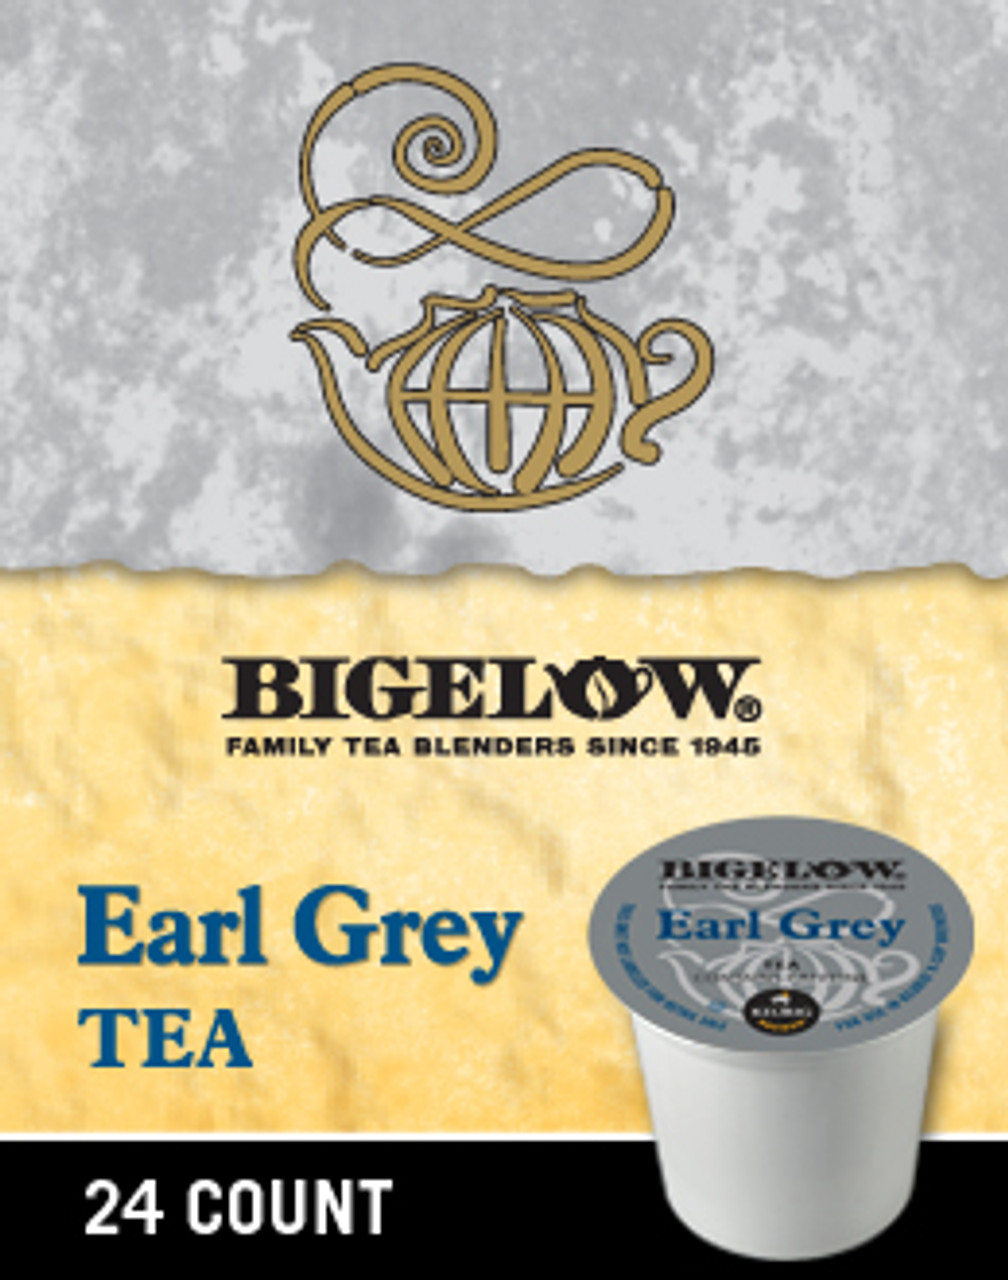 A really fine cup of tea is one of life's true pleasures. Choose Earl Grey for the enjoyment it will bring to your tea drinking. This delicately scented, aristocratic blend is an international favorite.